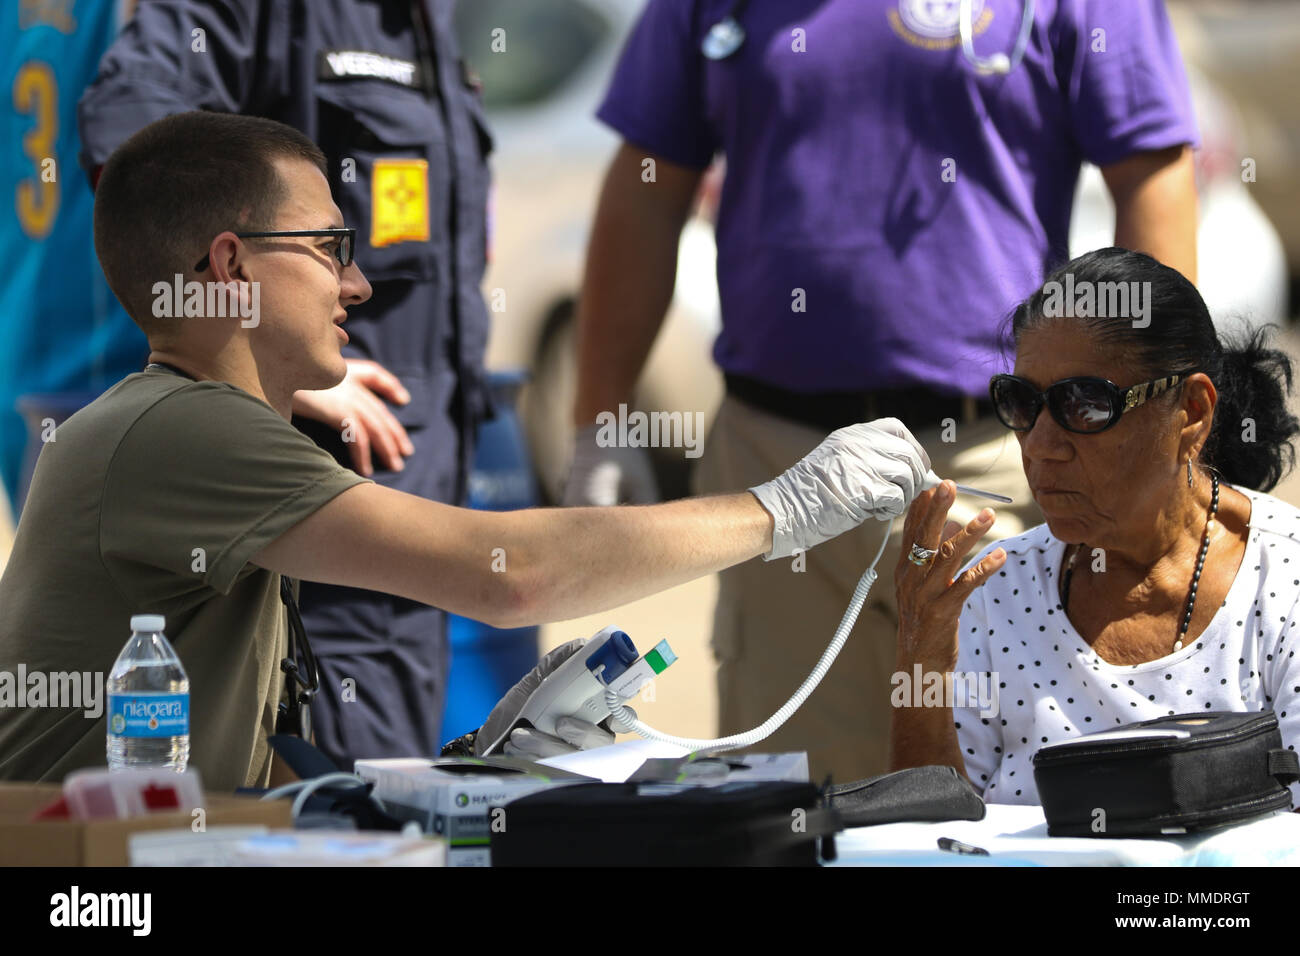 Spc. Jacob Parker, a health care specialist with the Ohio Army National Guard, takes the vital signs of a patient at a temporary medical outreach station set up on a residential street Oct. 21, 2017, in Juana Diaz, Puerto Rico. Parker is part of a Rapid Assessment Team (RAT) that travels to members of the community who need medical attention but are unable to make it to a hospital or aid station due to road closures or lack of transportation following Hurricane Maria. (Ohio National Guard photo by Sgt. Joanna Bradshaw) - Stock Image